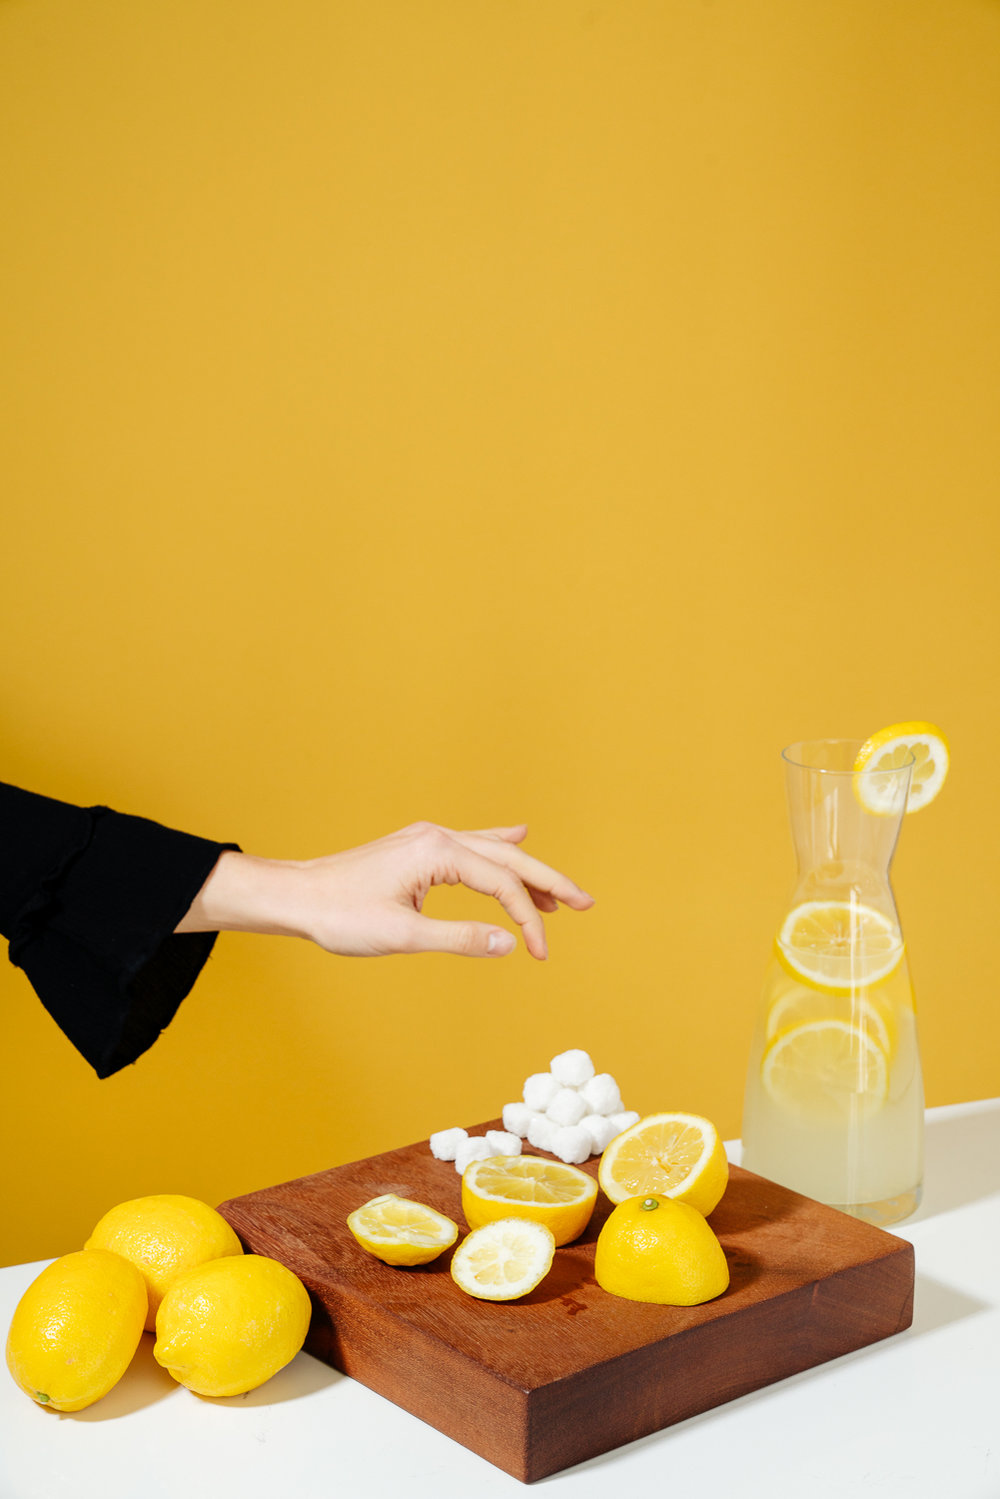 When Life Gives you Lemons_Humans and Food-15.jpg